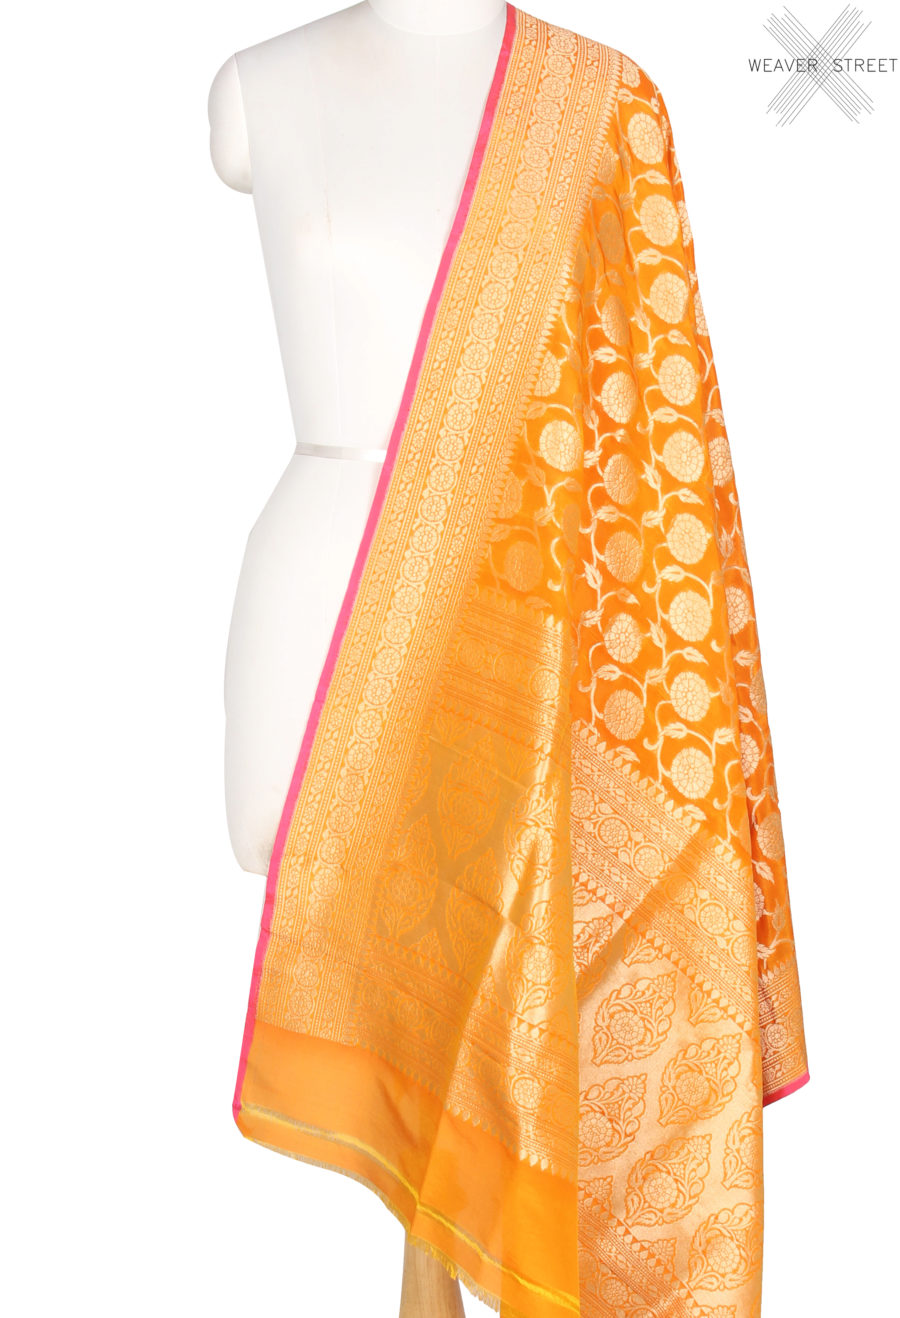 Orange Katan Silk Banarasi Dupatta with flower and leaf jaal (1) Main